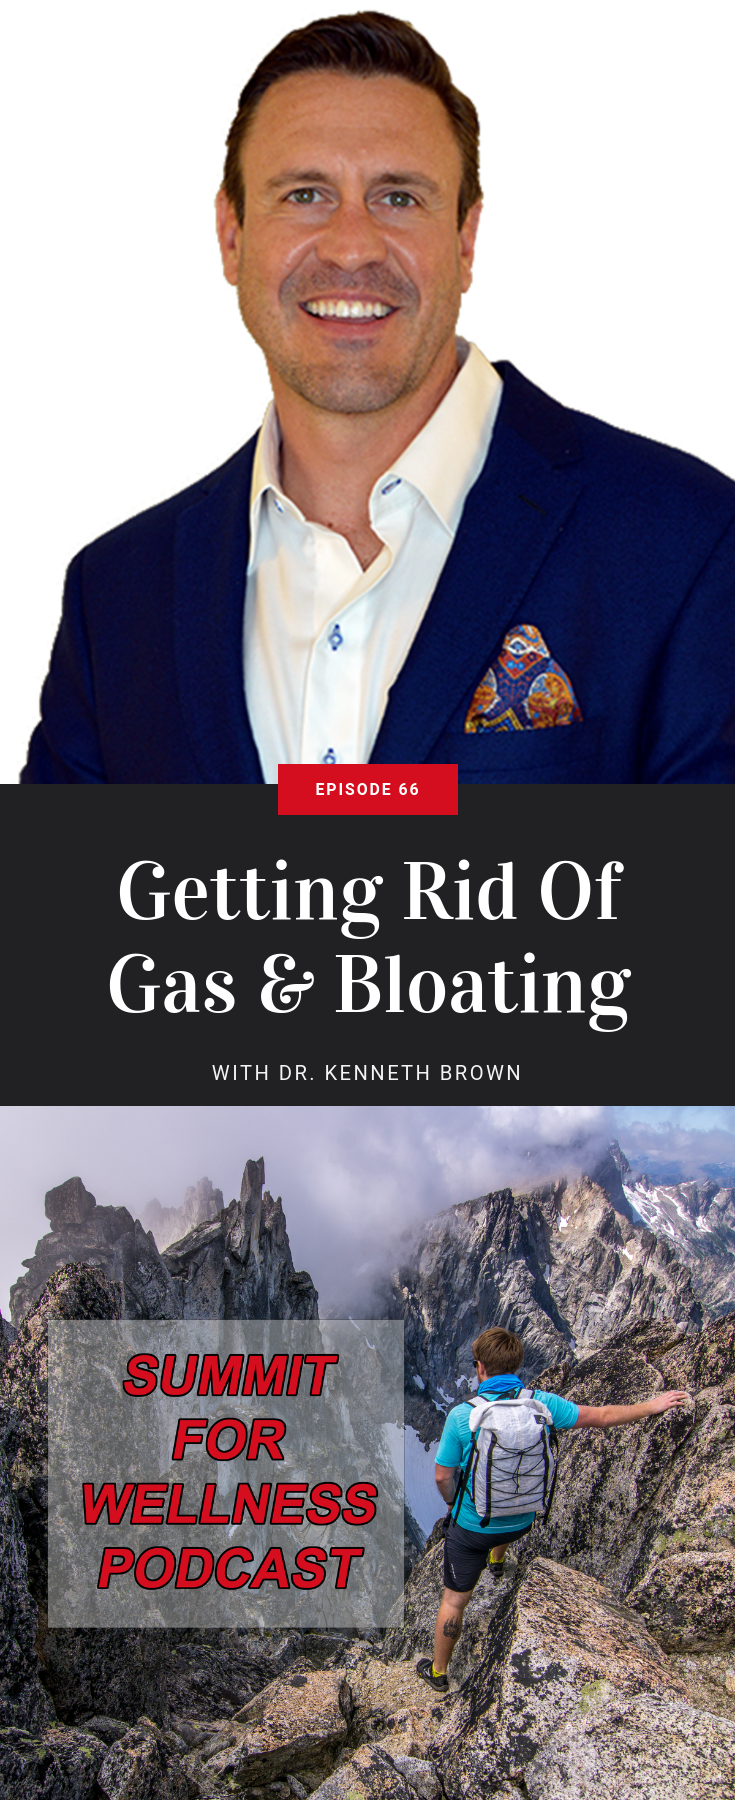 In this episode, Dr. Kenneth Brown dives deep into, more often than not, the uncomfortable conversation of gas and bloating